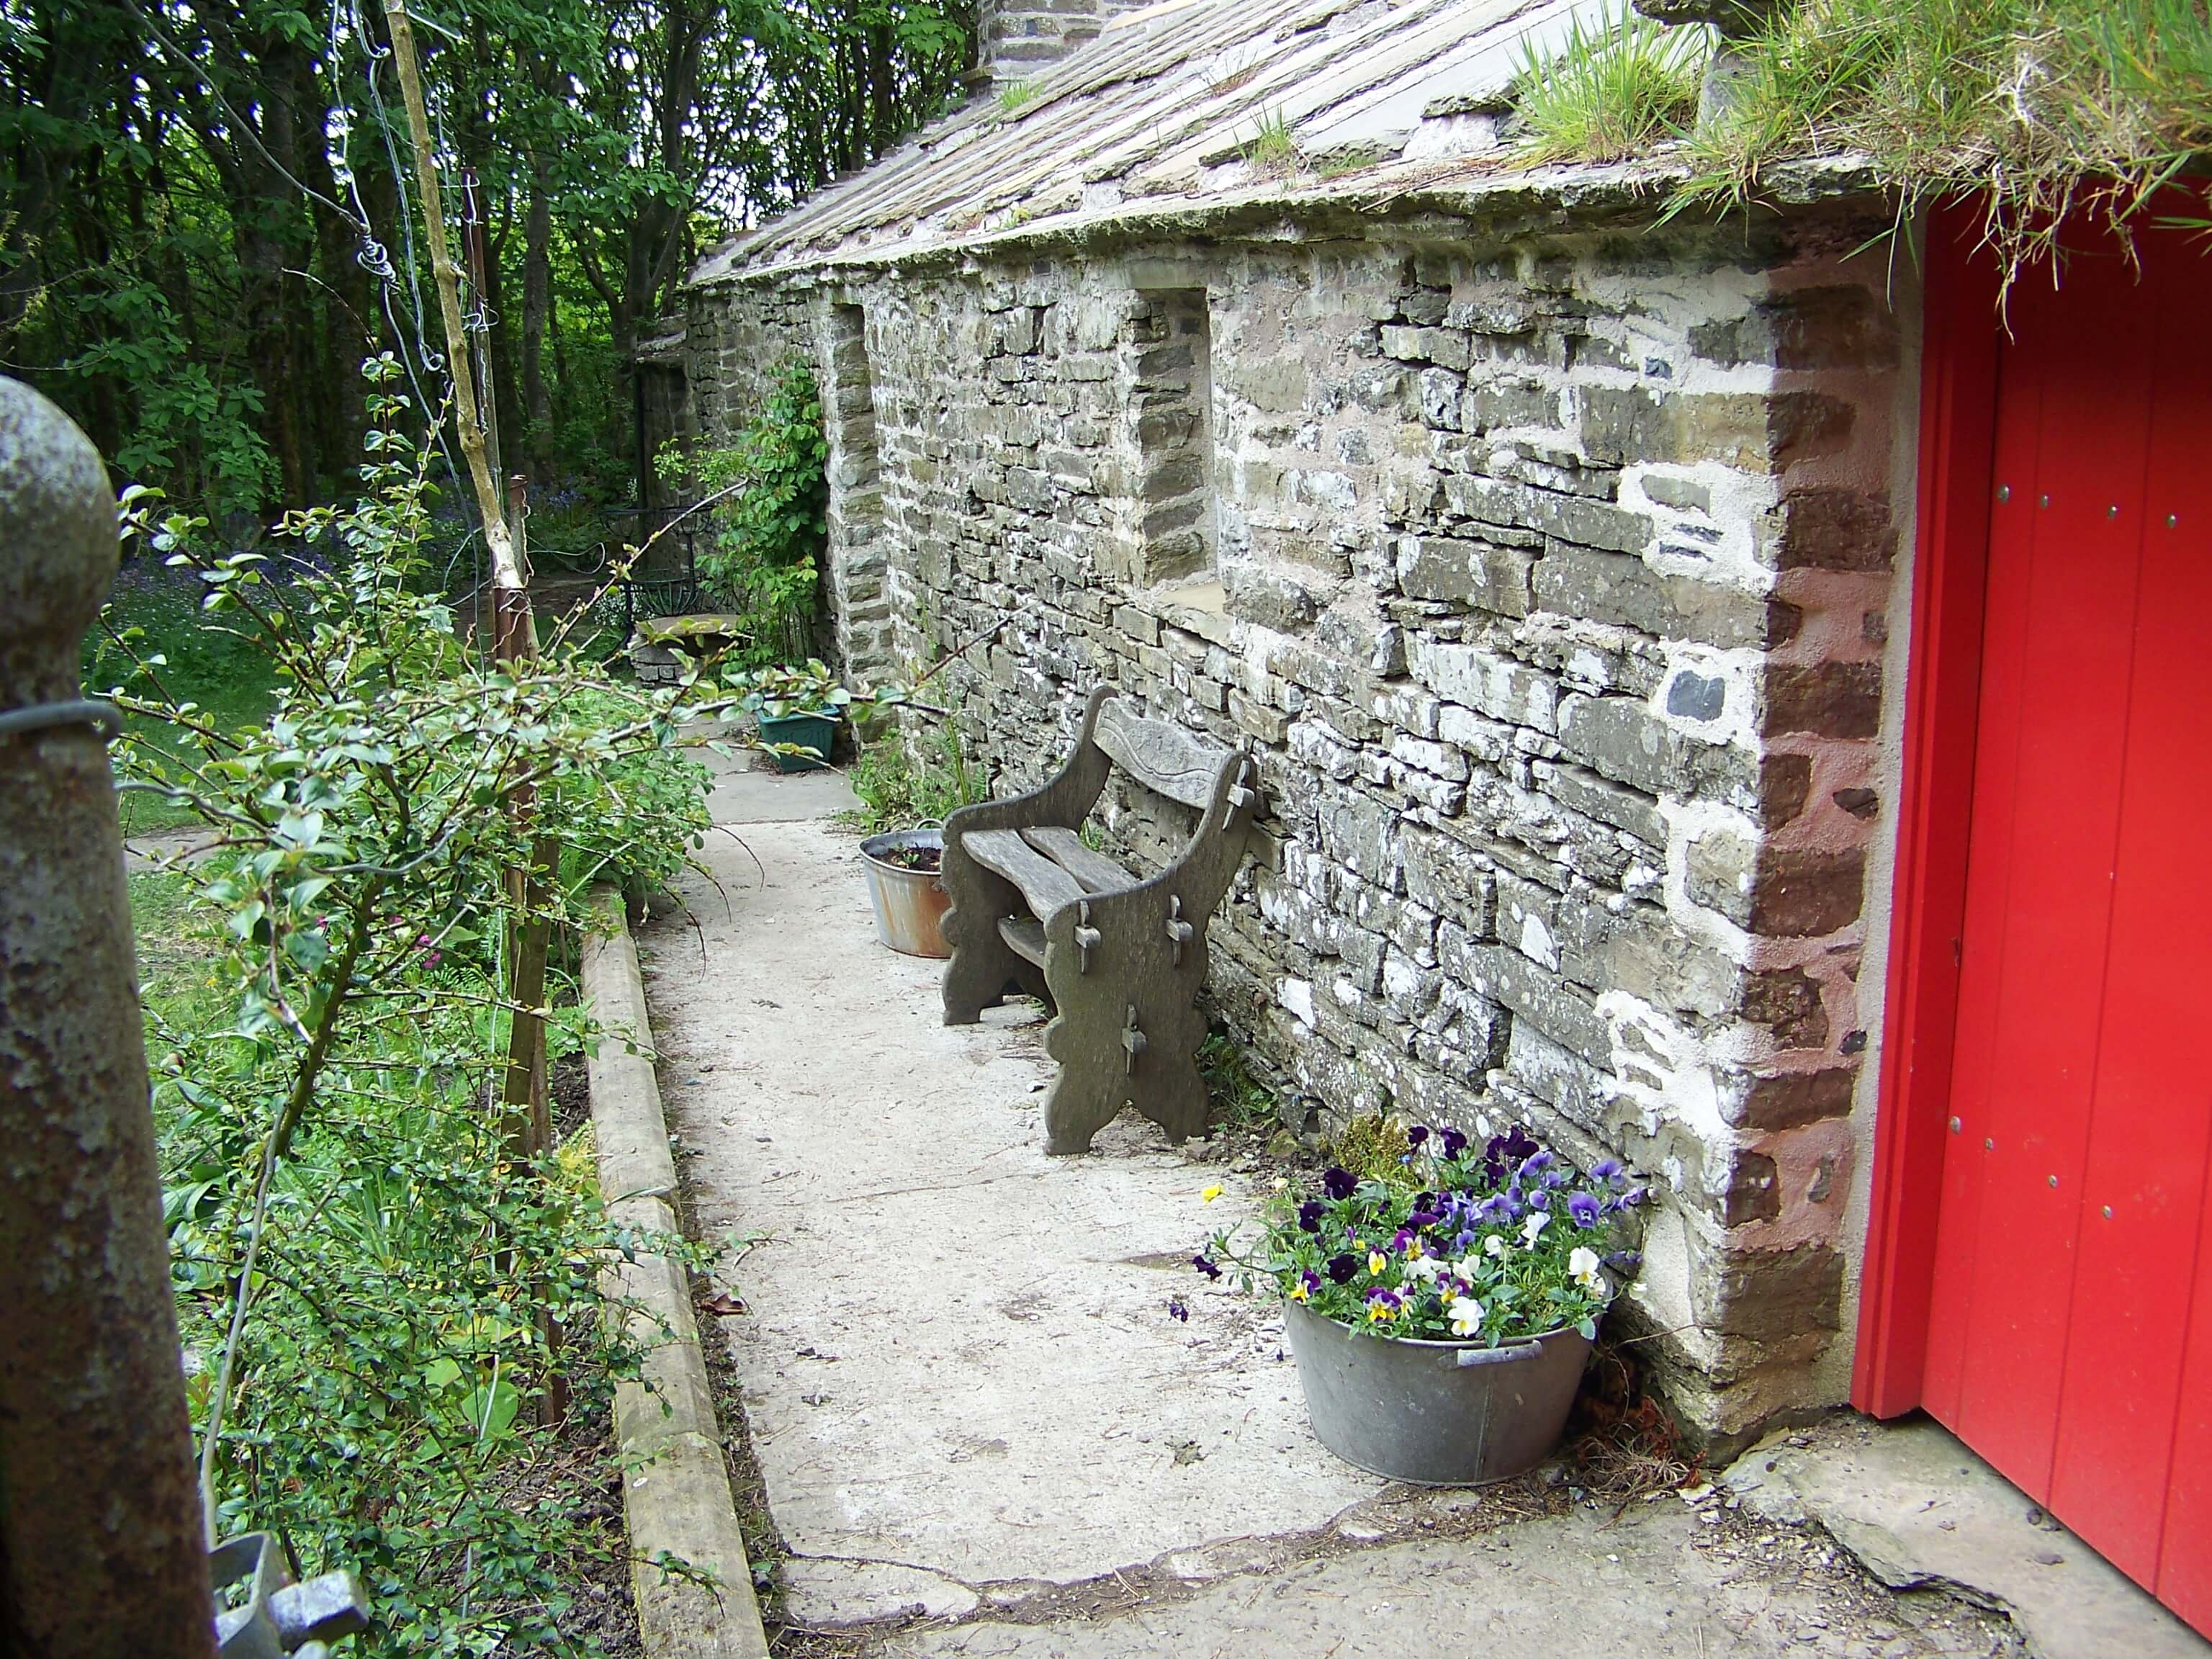 Edwin Harrold's cottage in the valley, Orkney Islands, Scotland